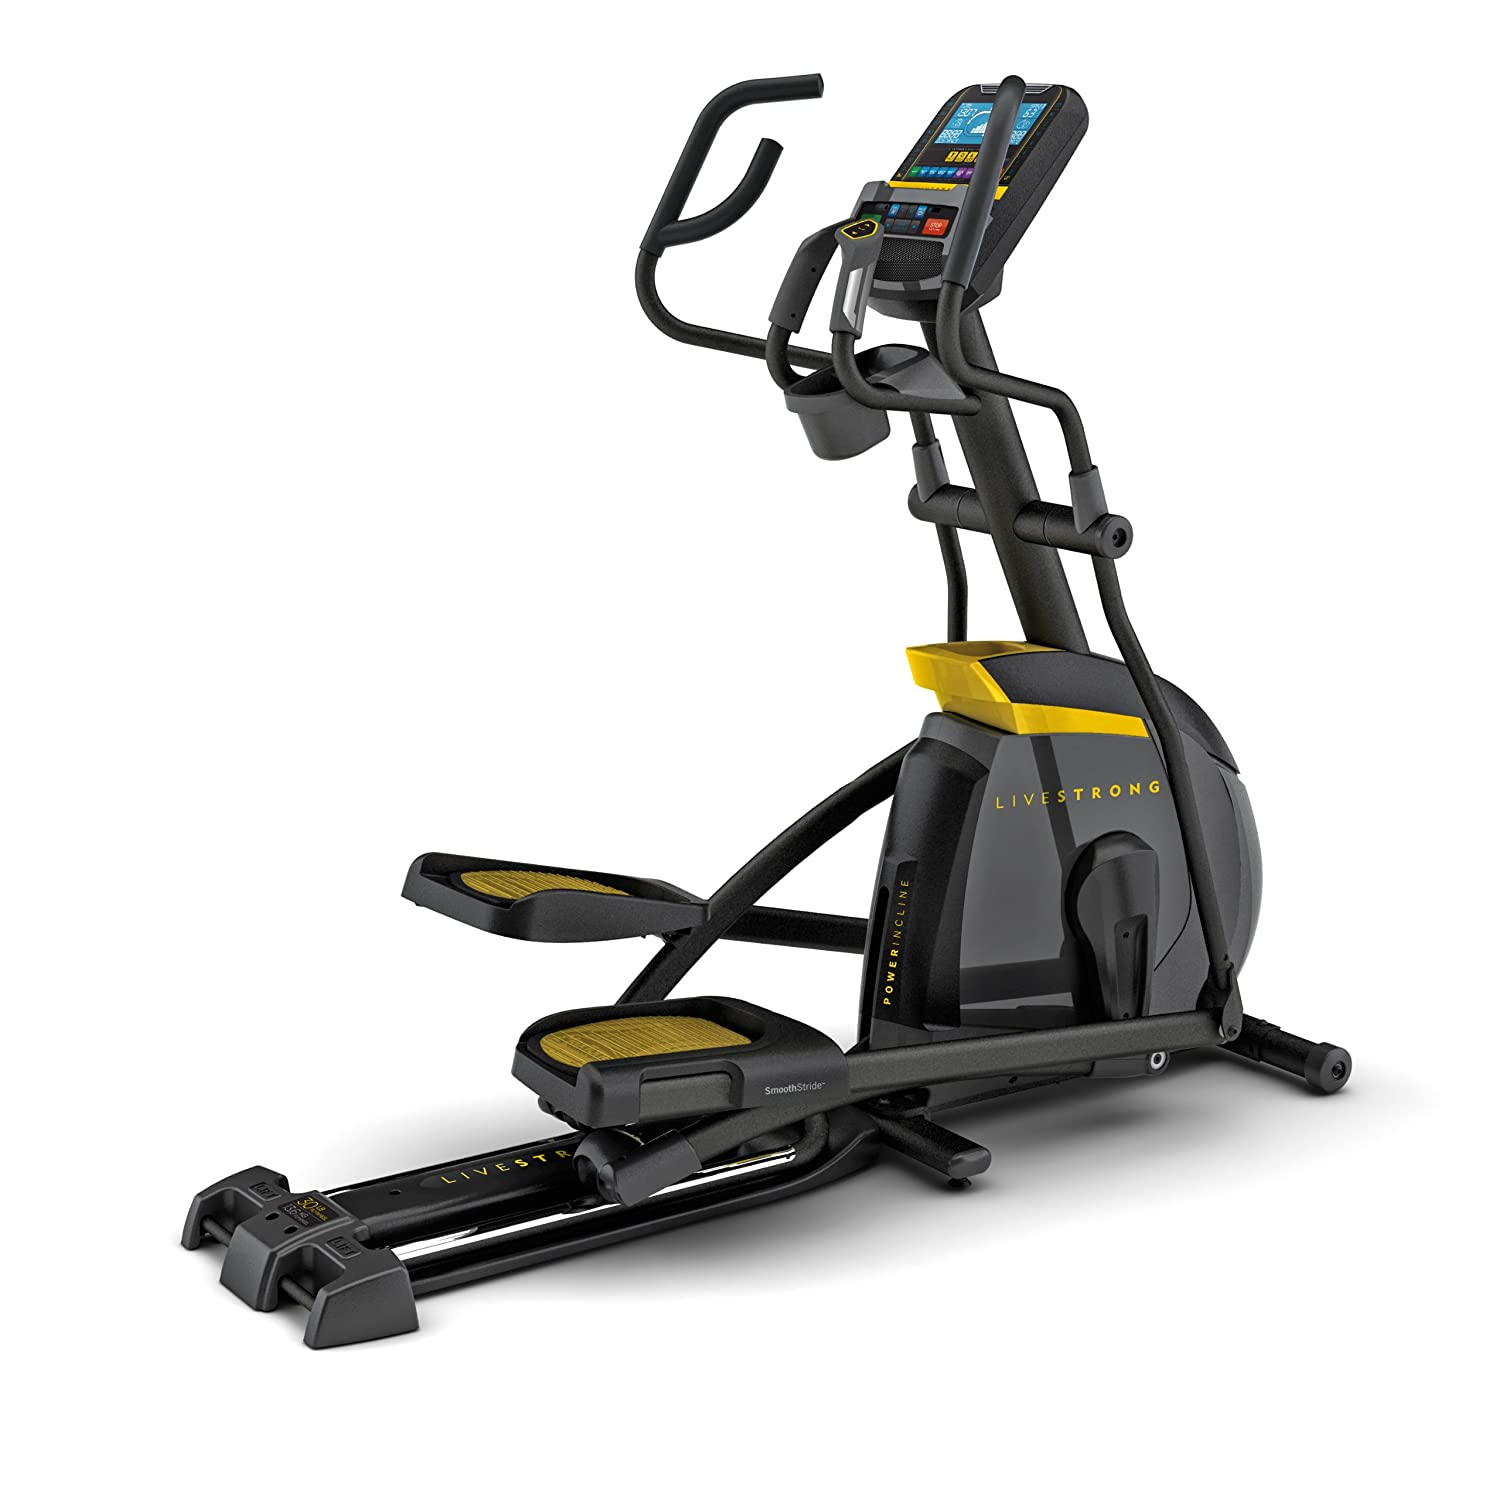 Exerpeutic elliptical trainer machines review september